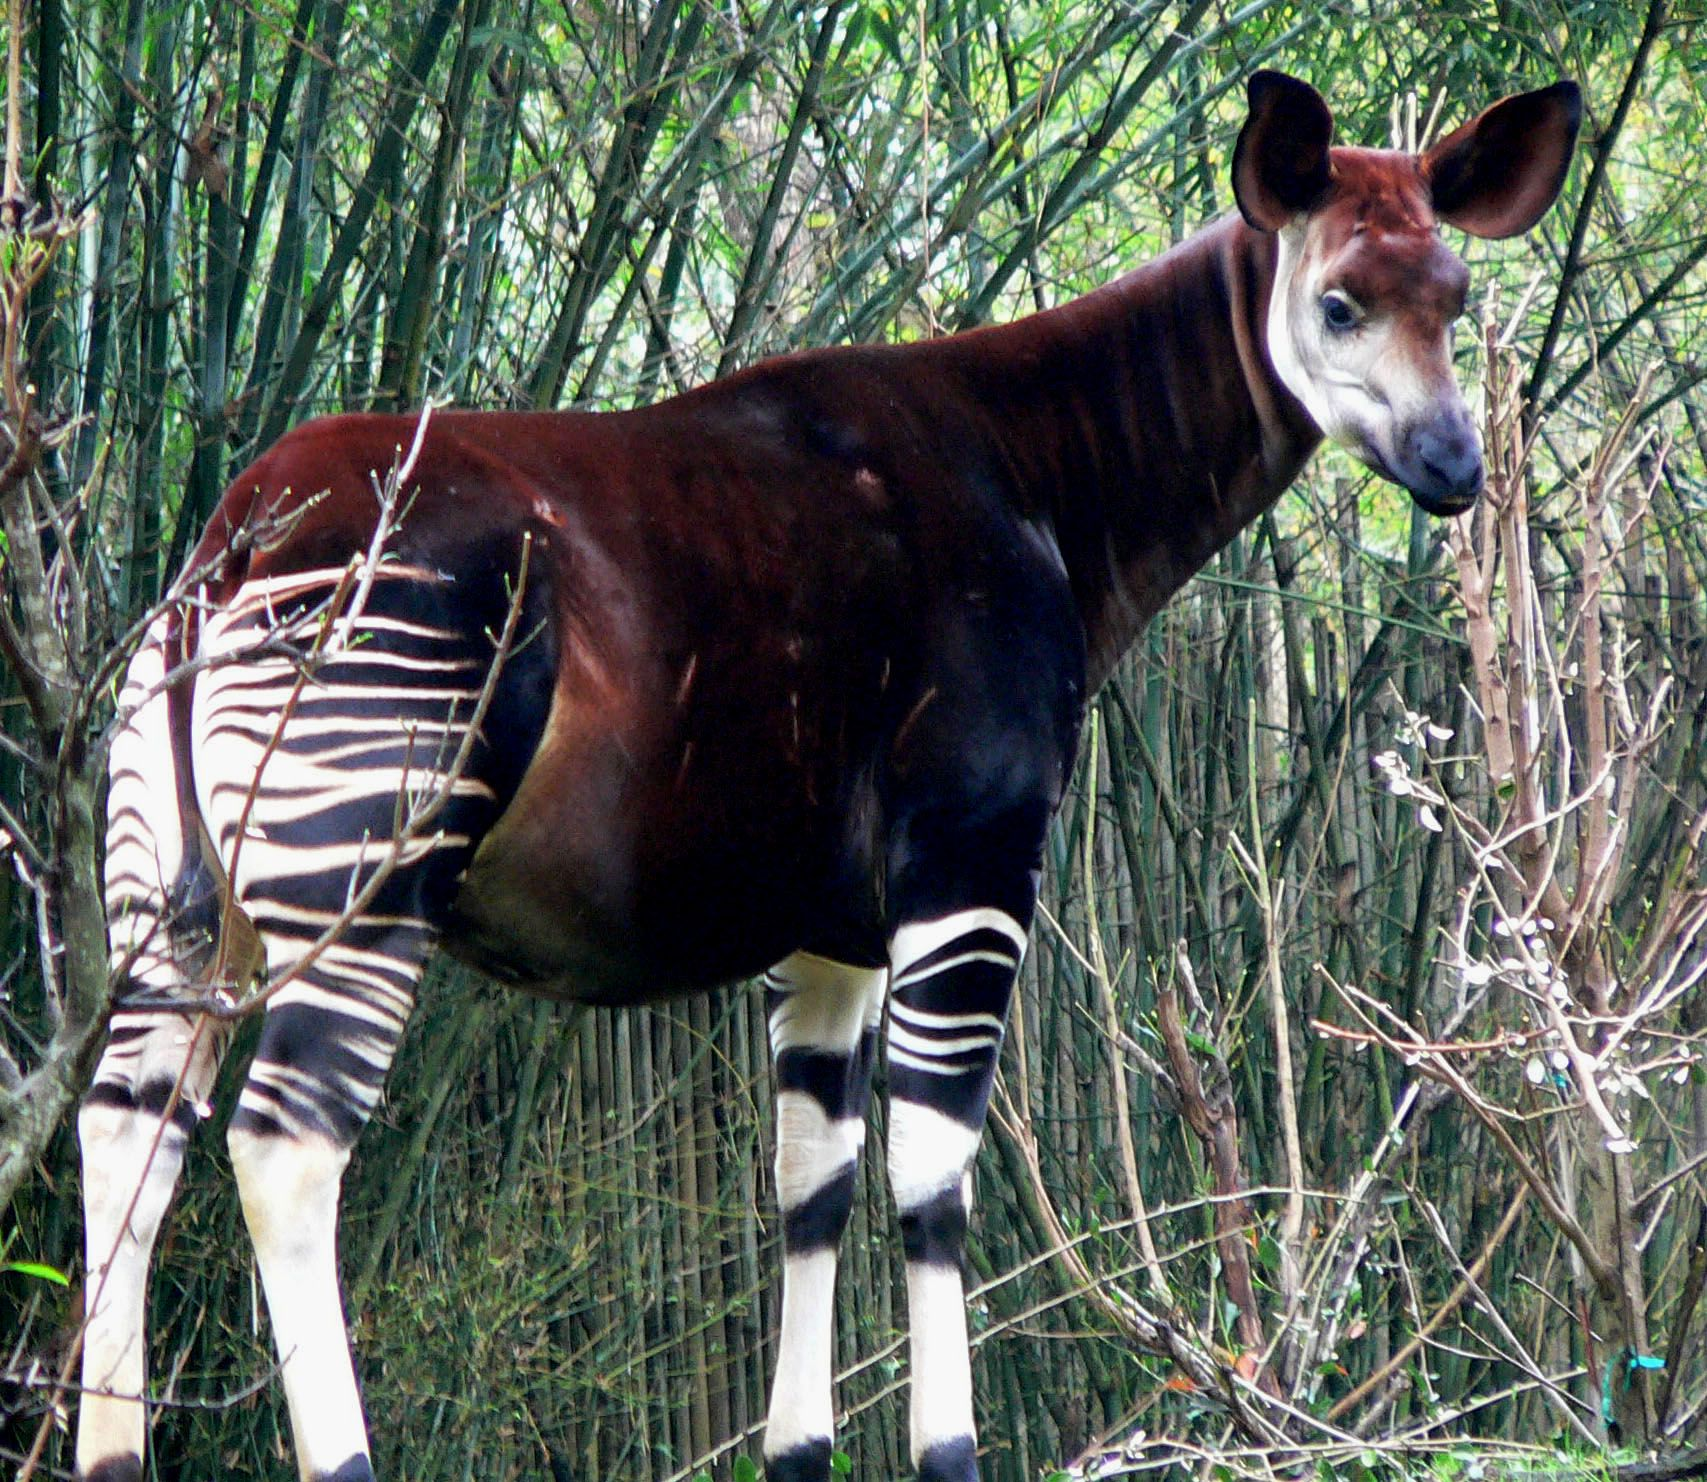 Okapi- endangered. Although the okapii bears striped markings reminiscent of zebras it is most closely related to the giraffe